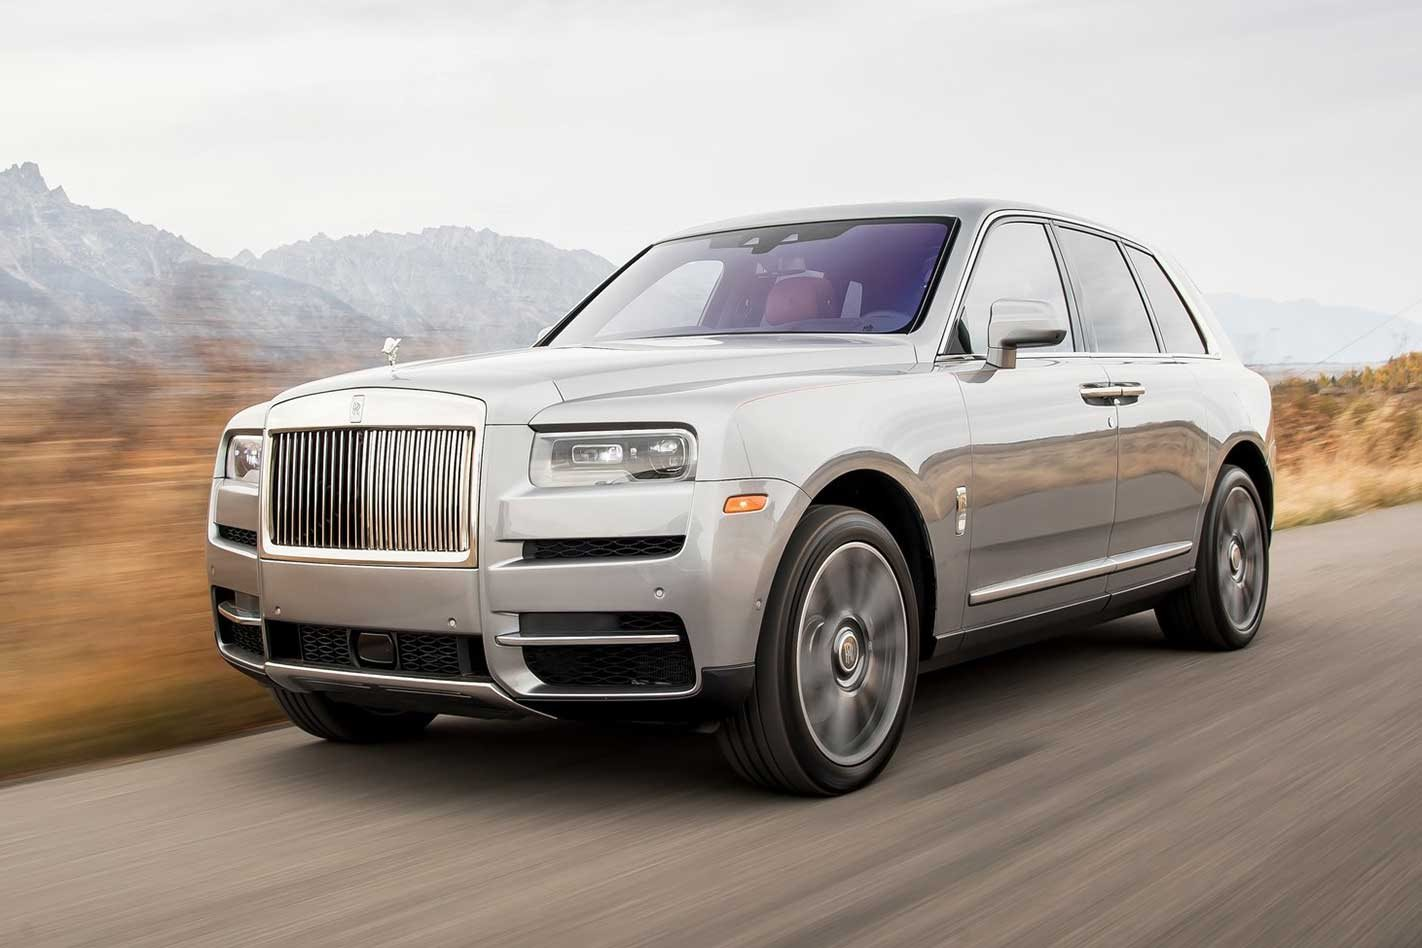 2019 Rolls-Royce Cullinan performance review